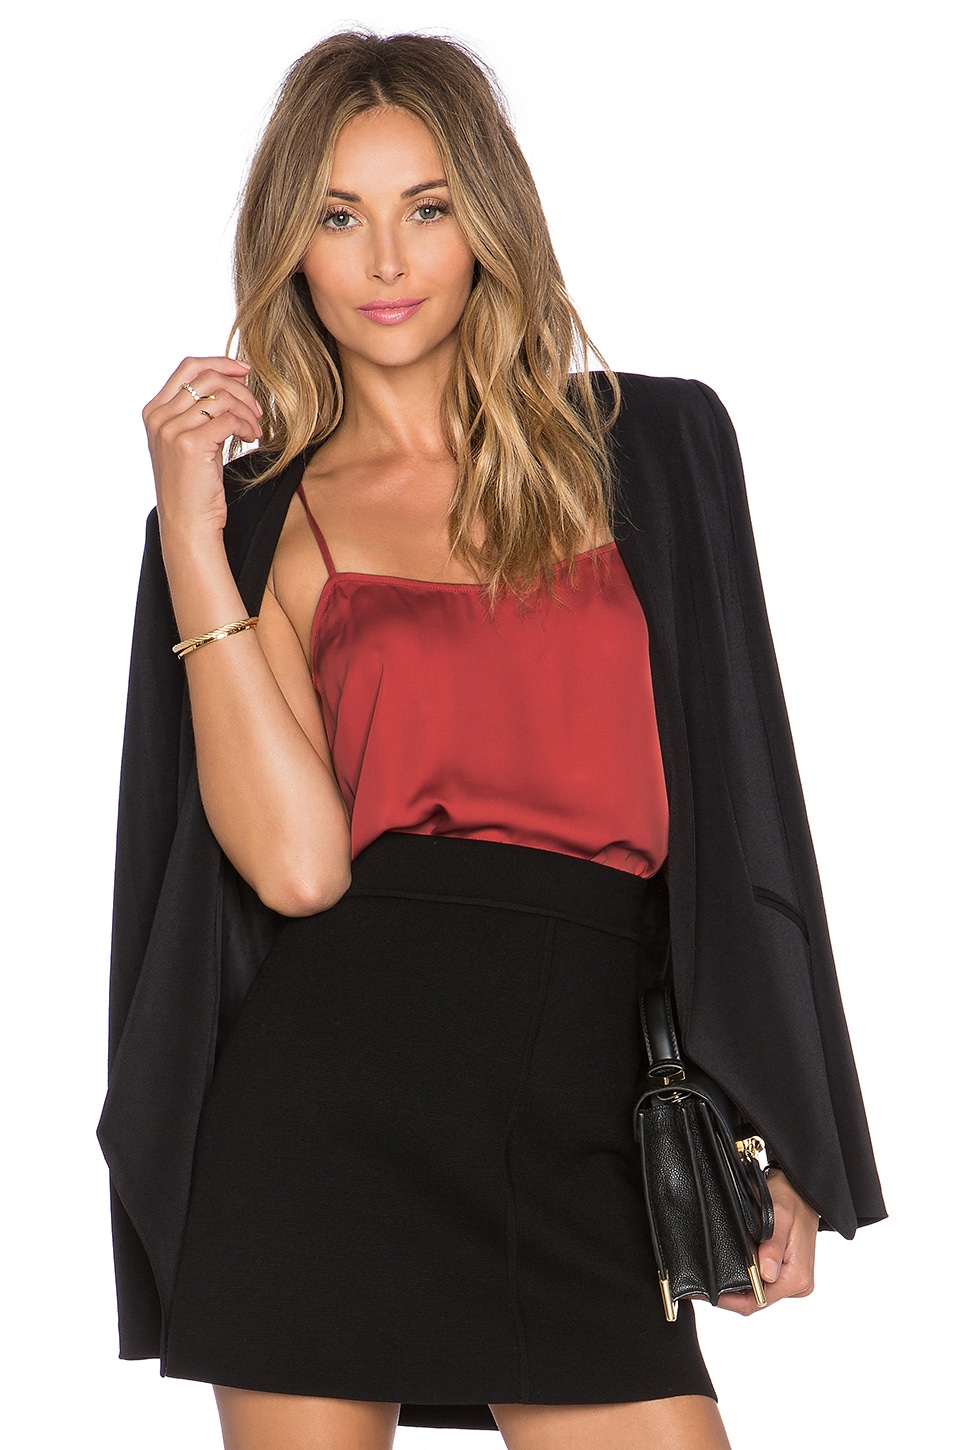 L'Academie The Cami Blouse in Bordeaux